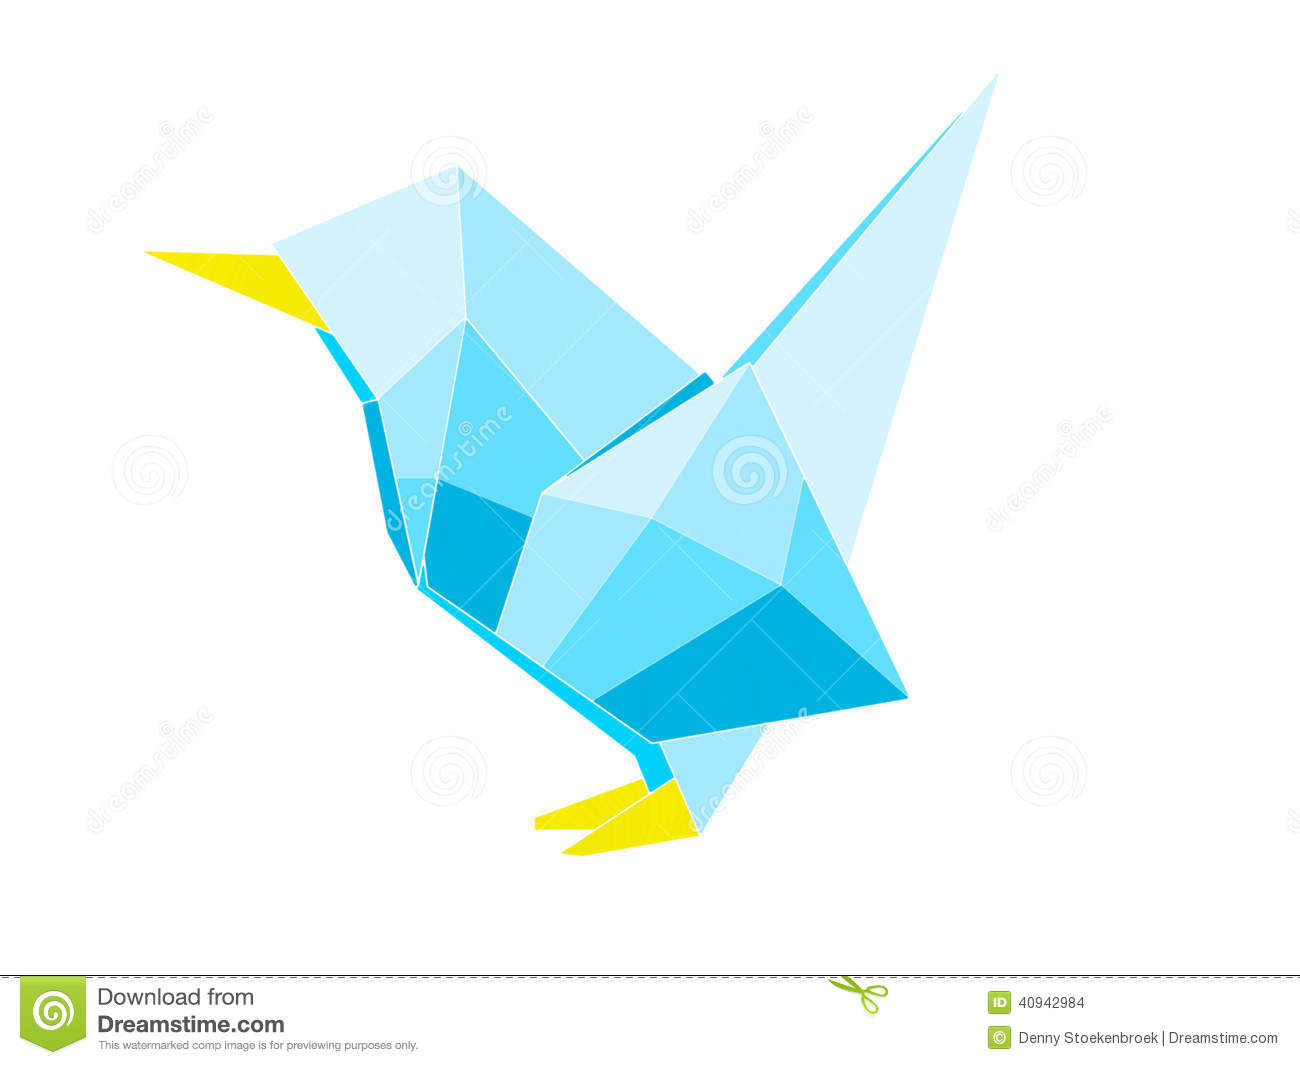 This Is A Digital Drawing Of An Origami Bird